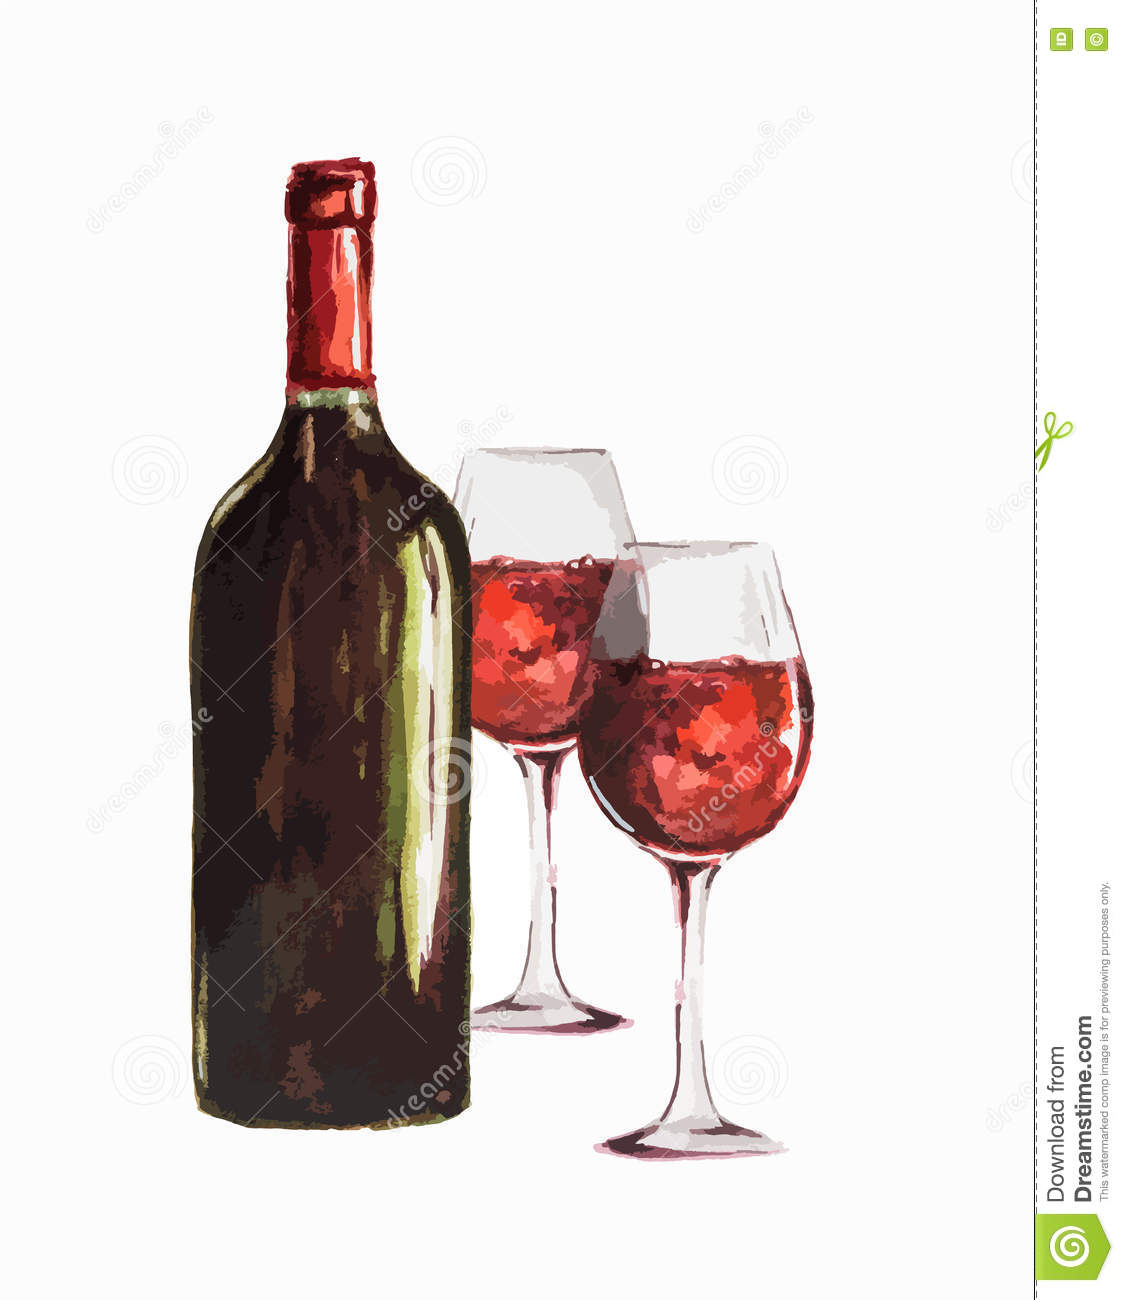 Watercolor Red Wine Bottle Stock Vector Illustration Of Funky Retro 74790196